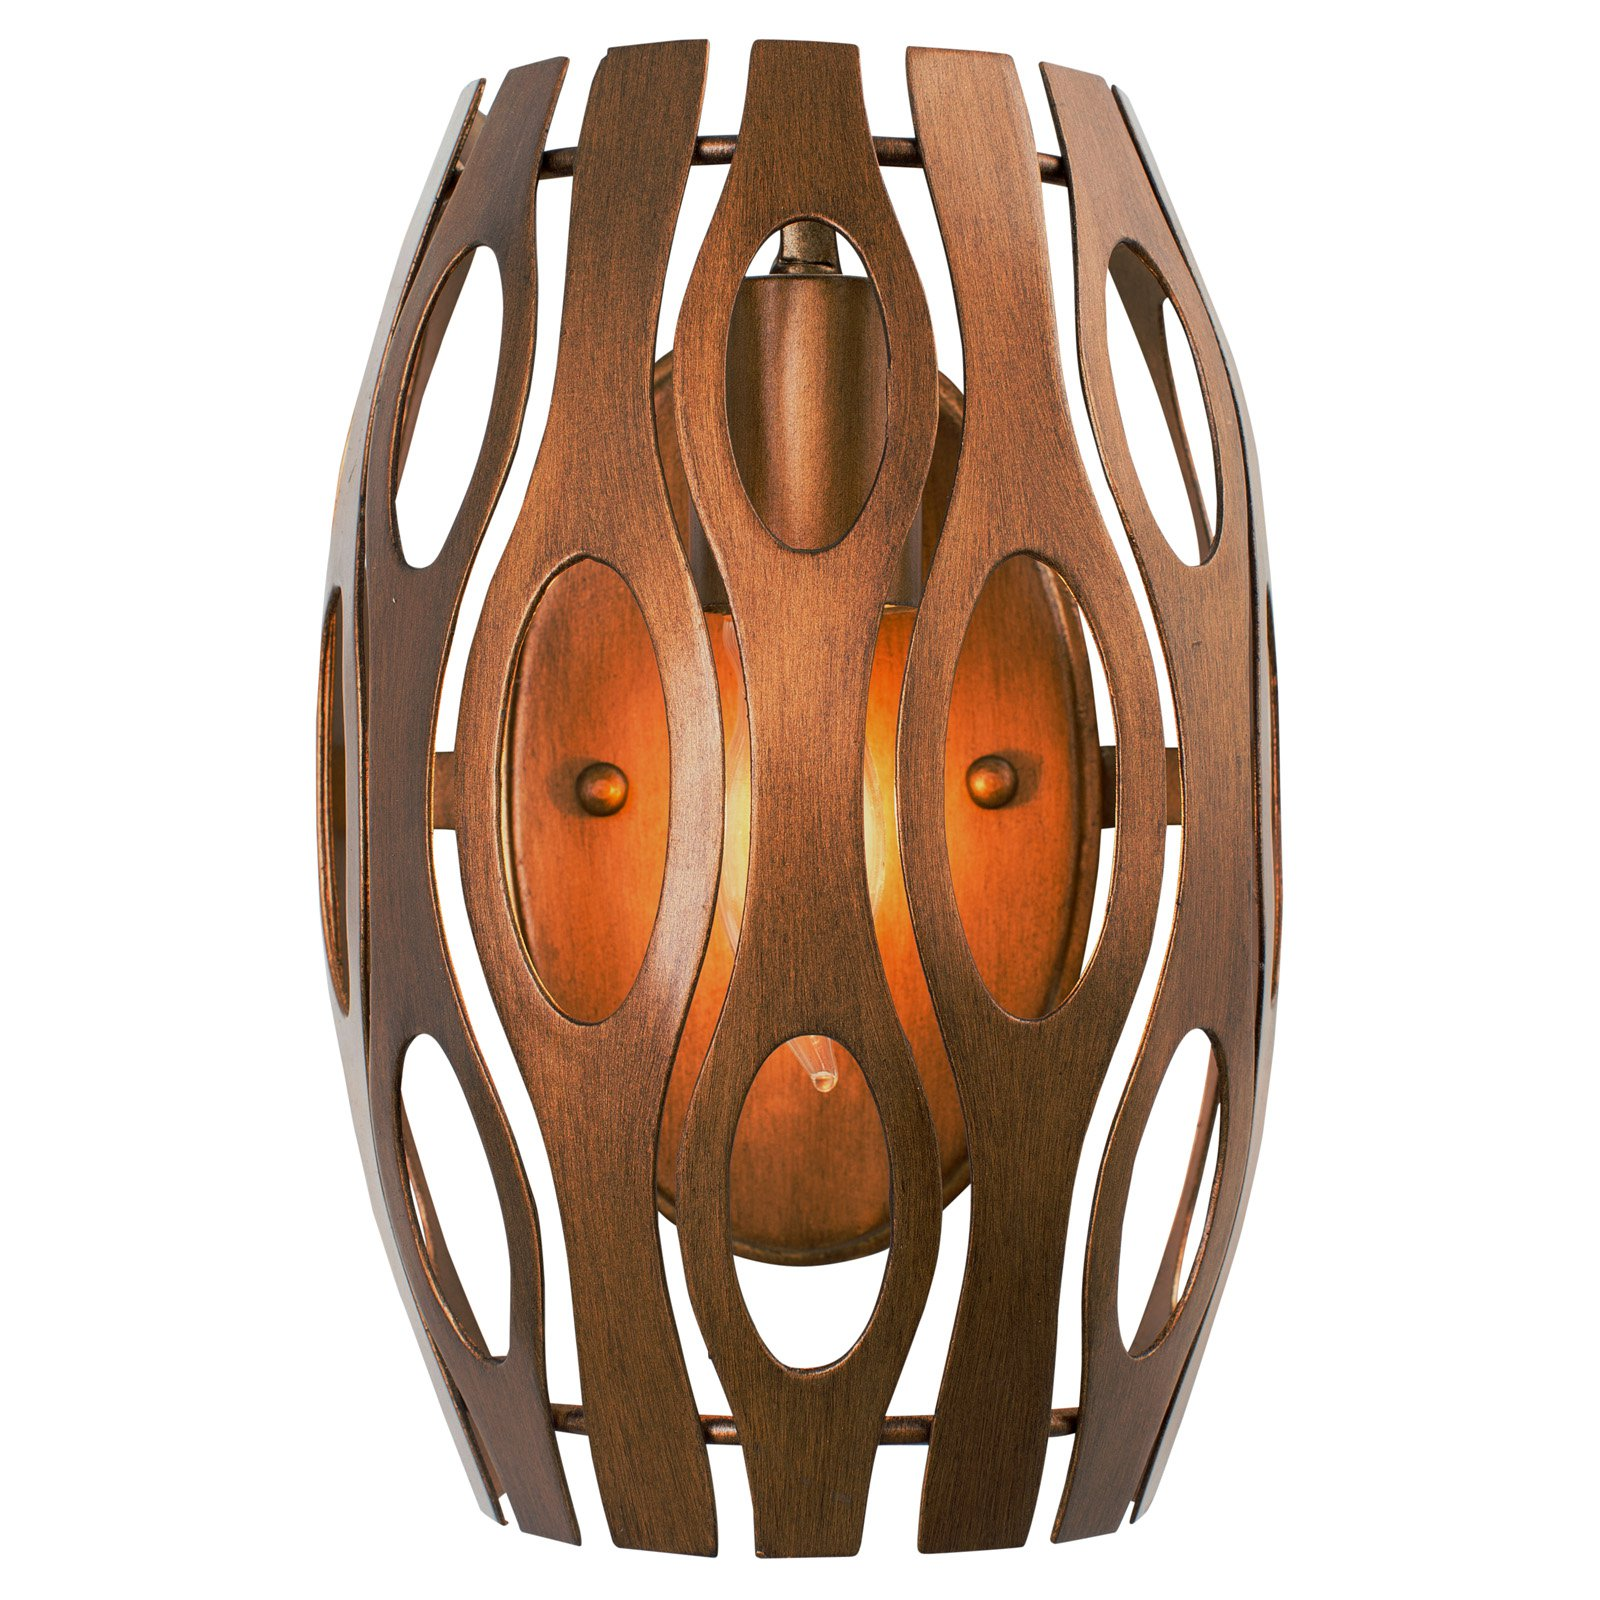 Varaluz - Masquerade - 1 Light Wall Sconce - Pearl Finish with Recycled Steel